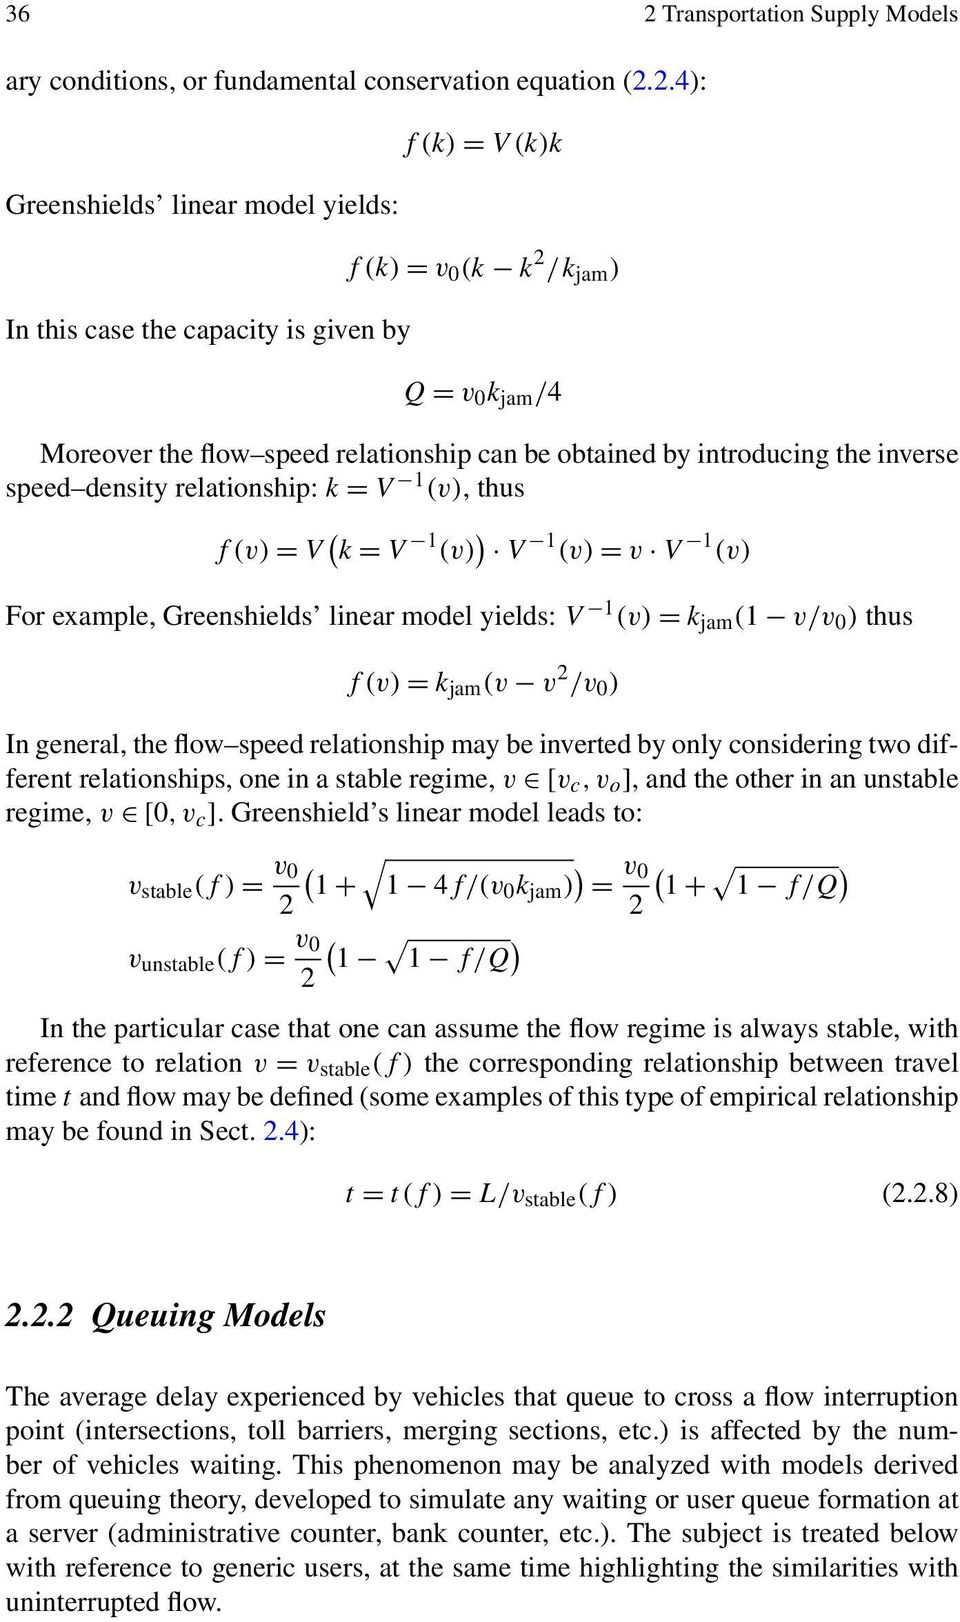 example, Greenshields linear model yields: V 1 (v) = k jam (1 v/v 0 ) thus f(v)= k jam (v v 2 /v 0 ) In general, the flow speed relationship may be inverted by only considering two different